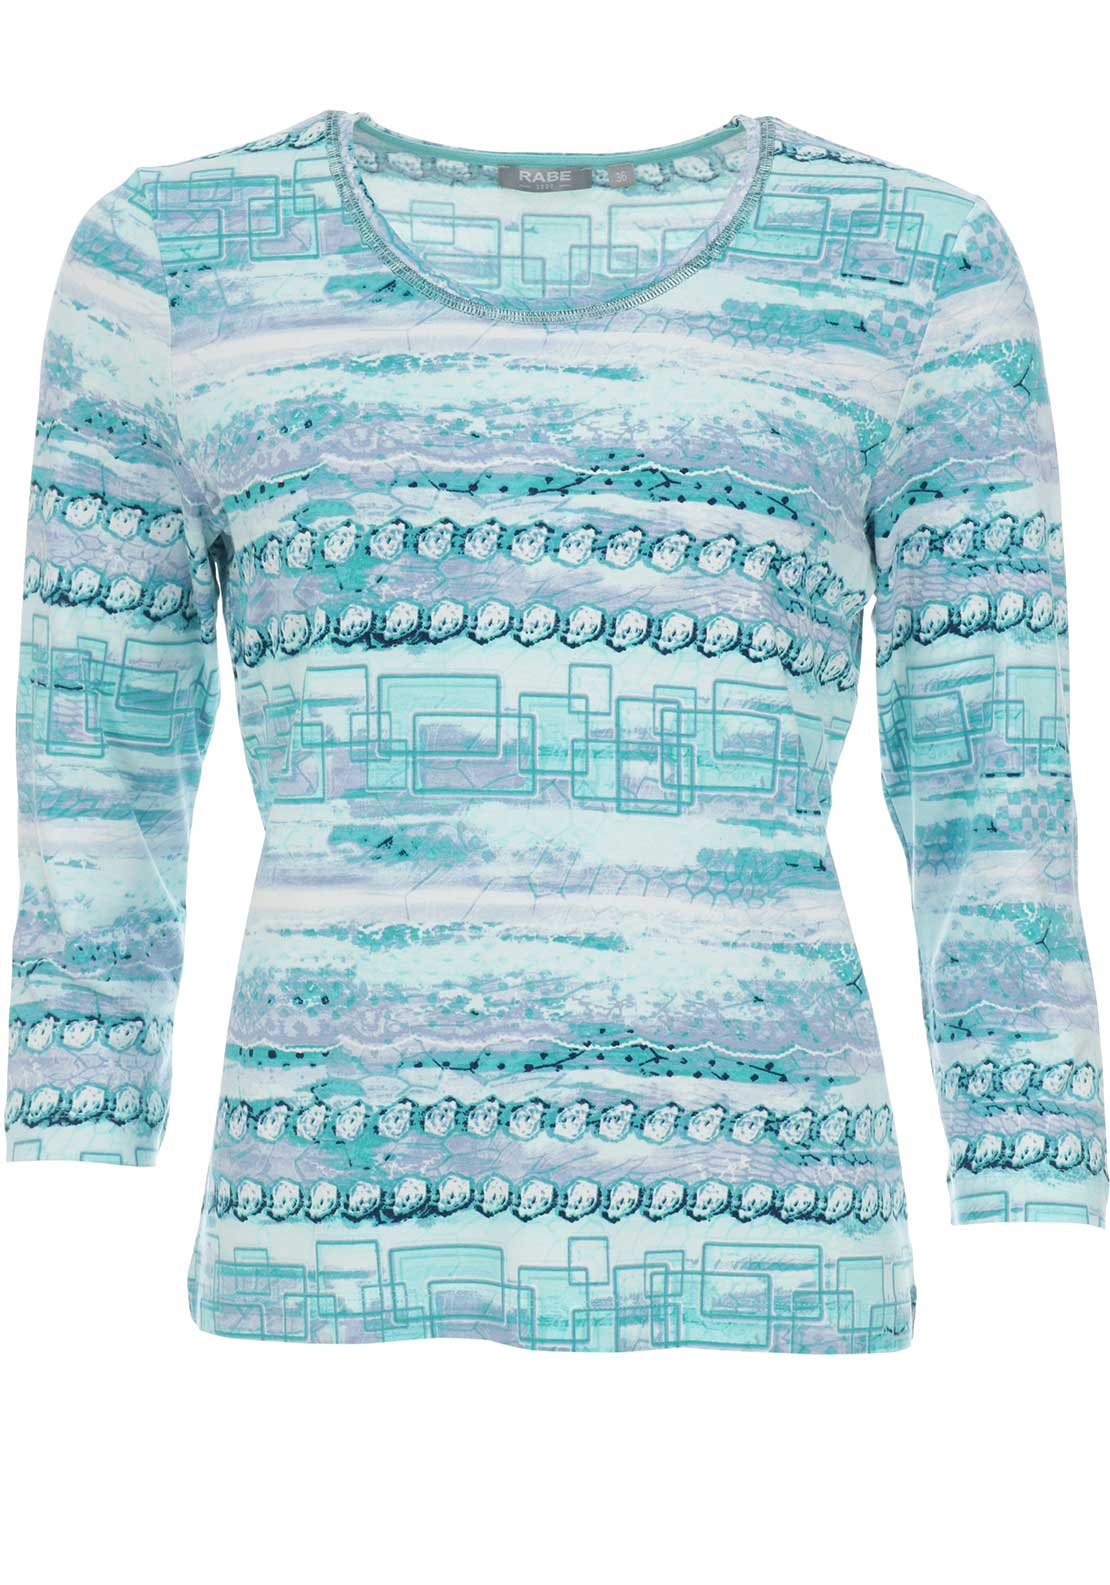 Rabe Printed Cropped Sleeve Top, Aqua